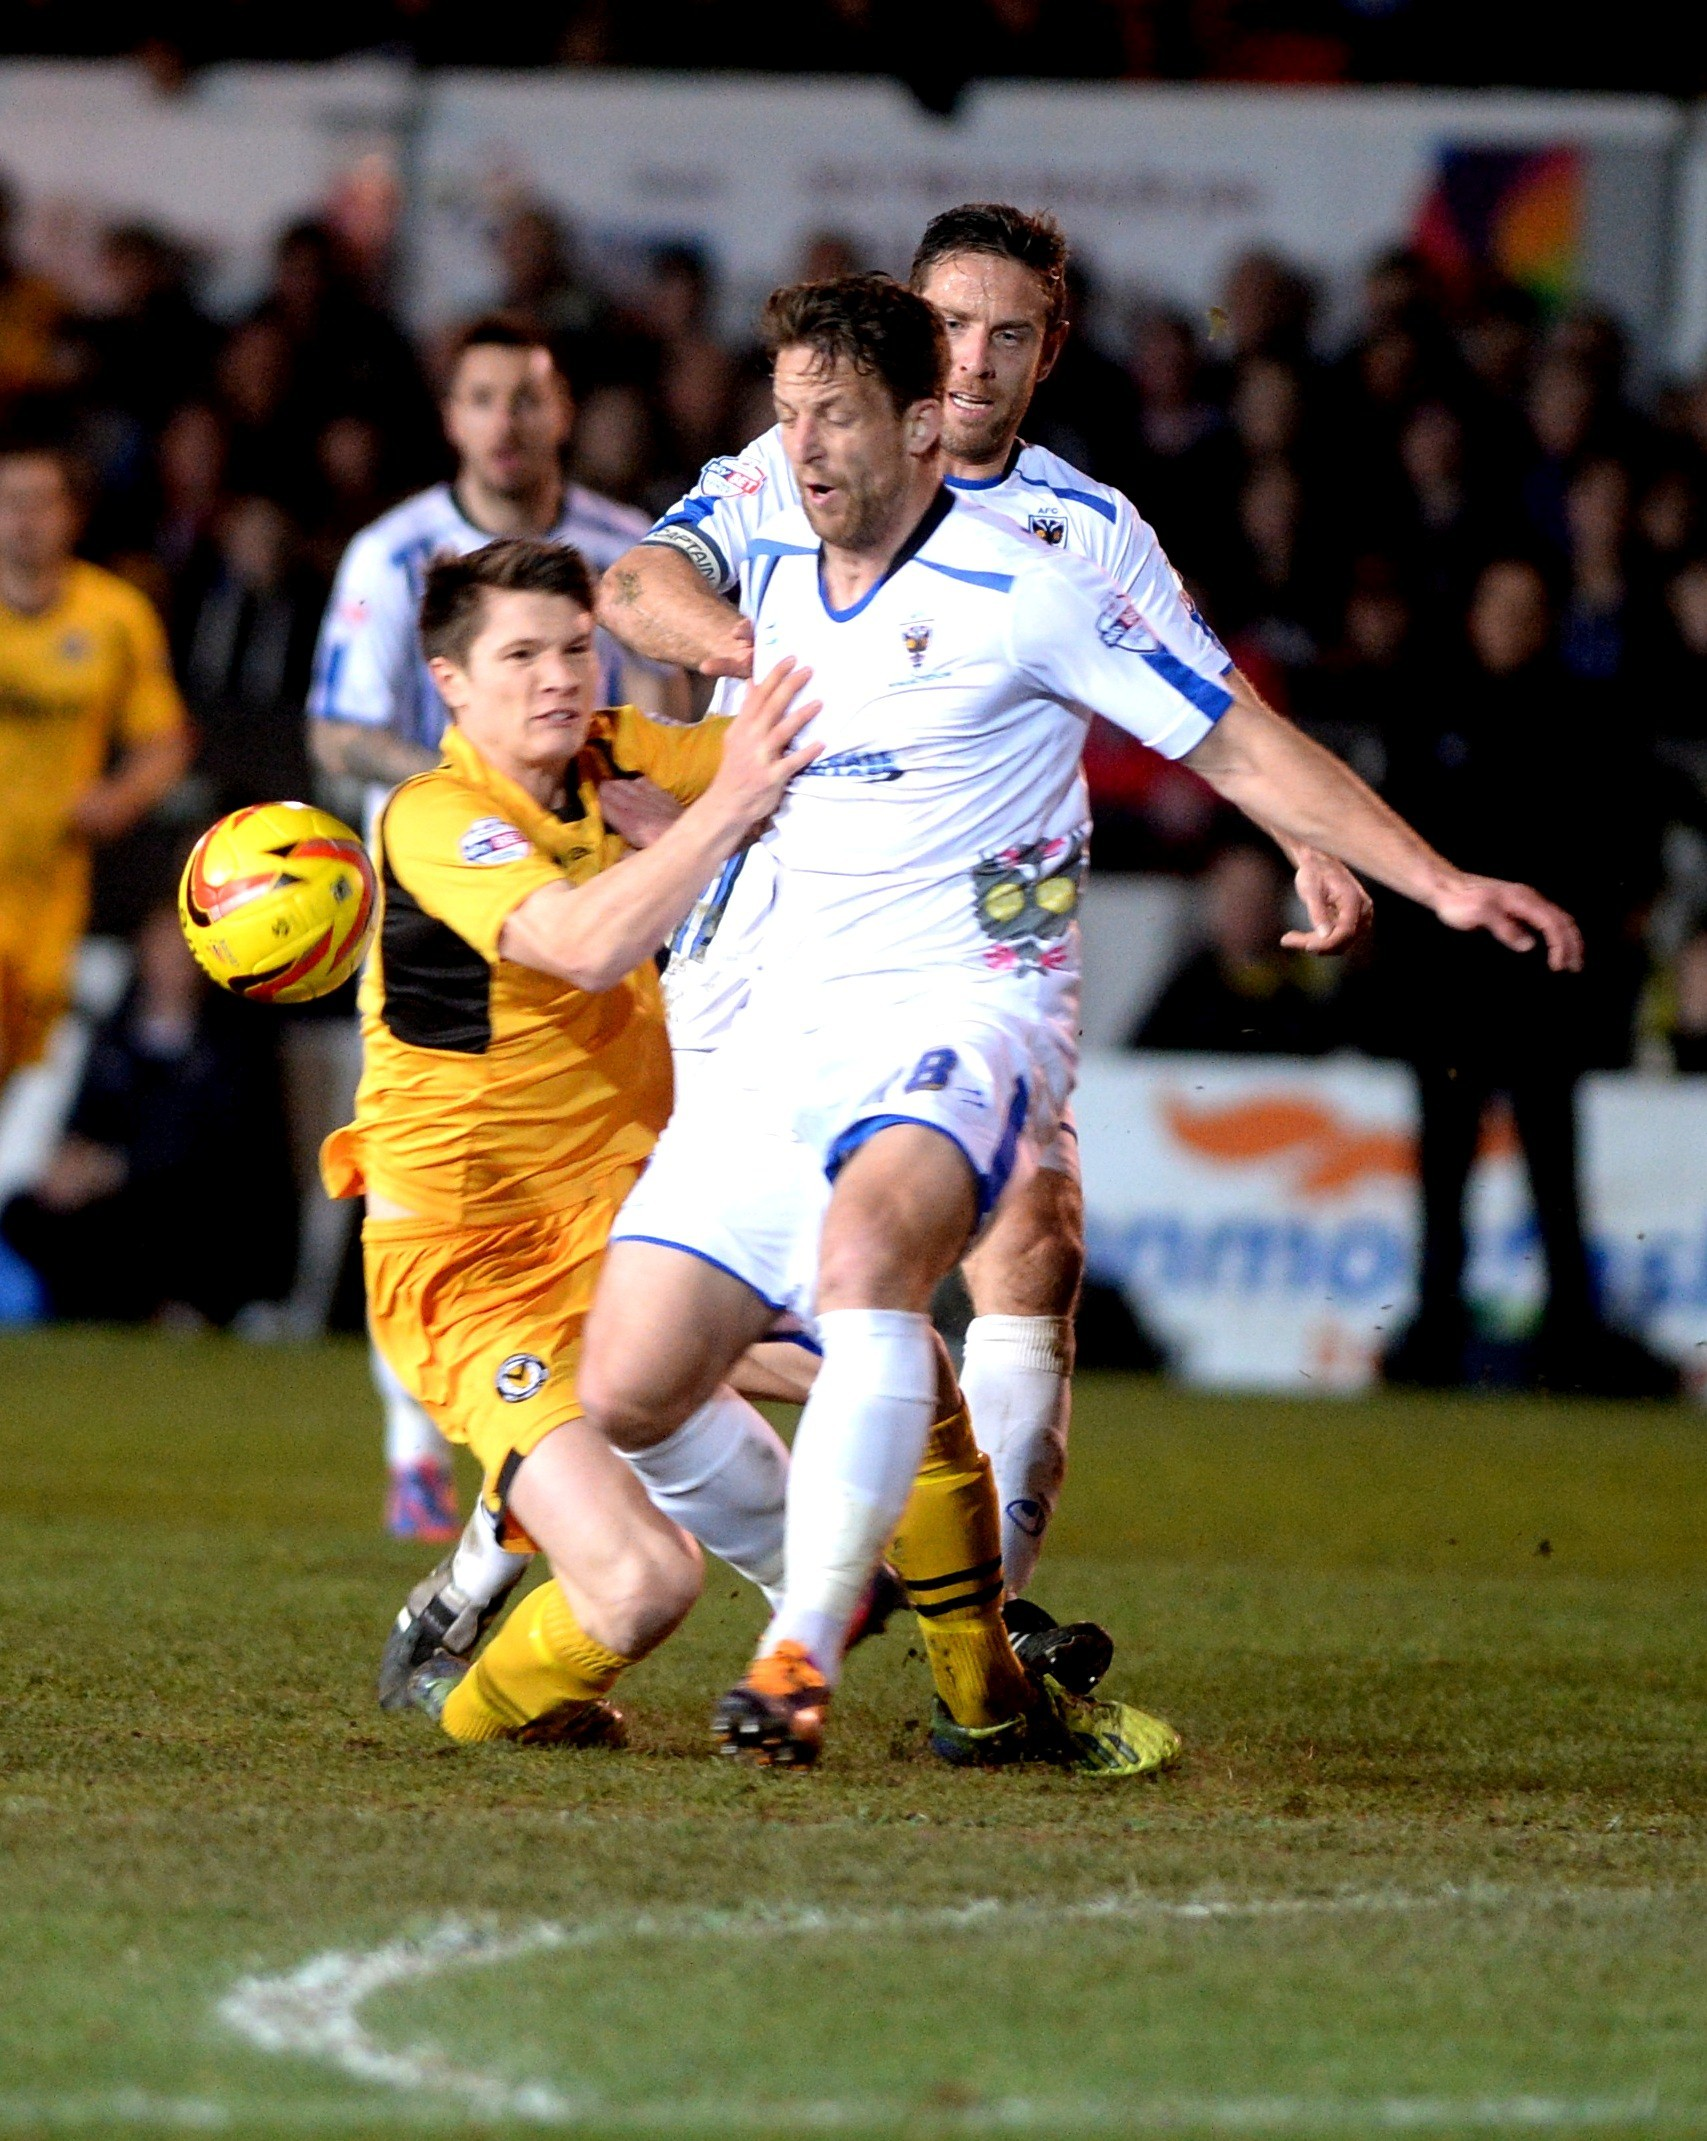 TAKEN DOWN: Newport County's Ryan Burge